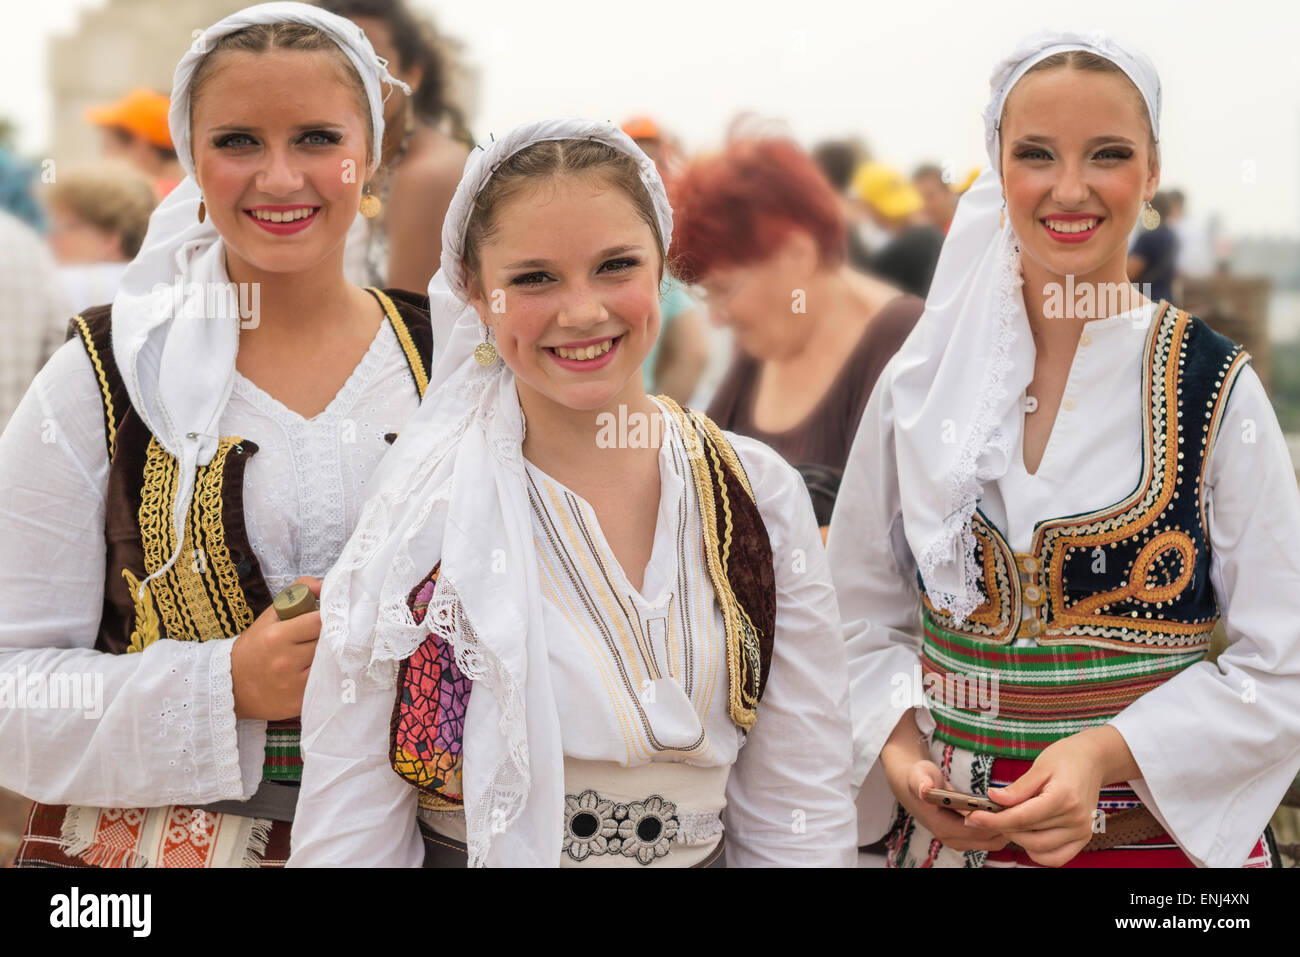 Young Girls in traditional Serbian folklore  dress,participants in the International folklore festival,Belgrade,Serbia - Stock Image